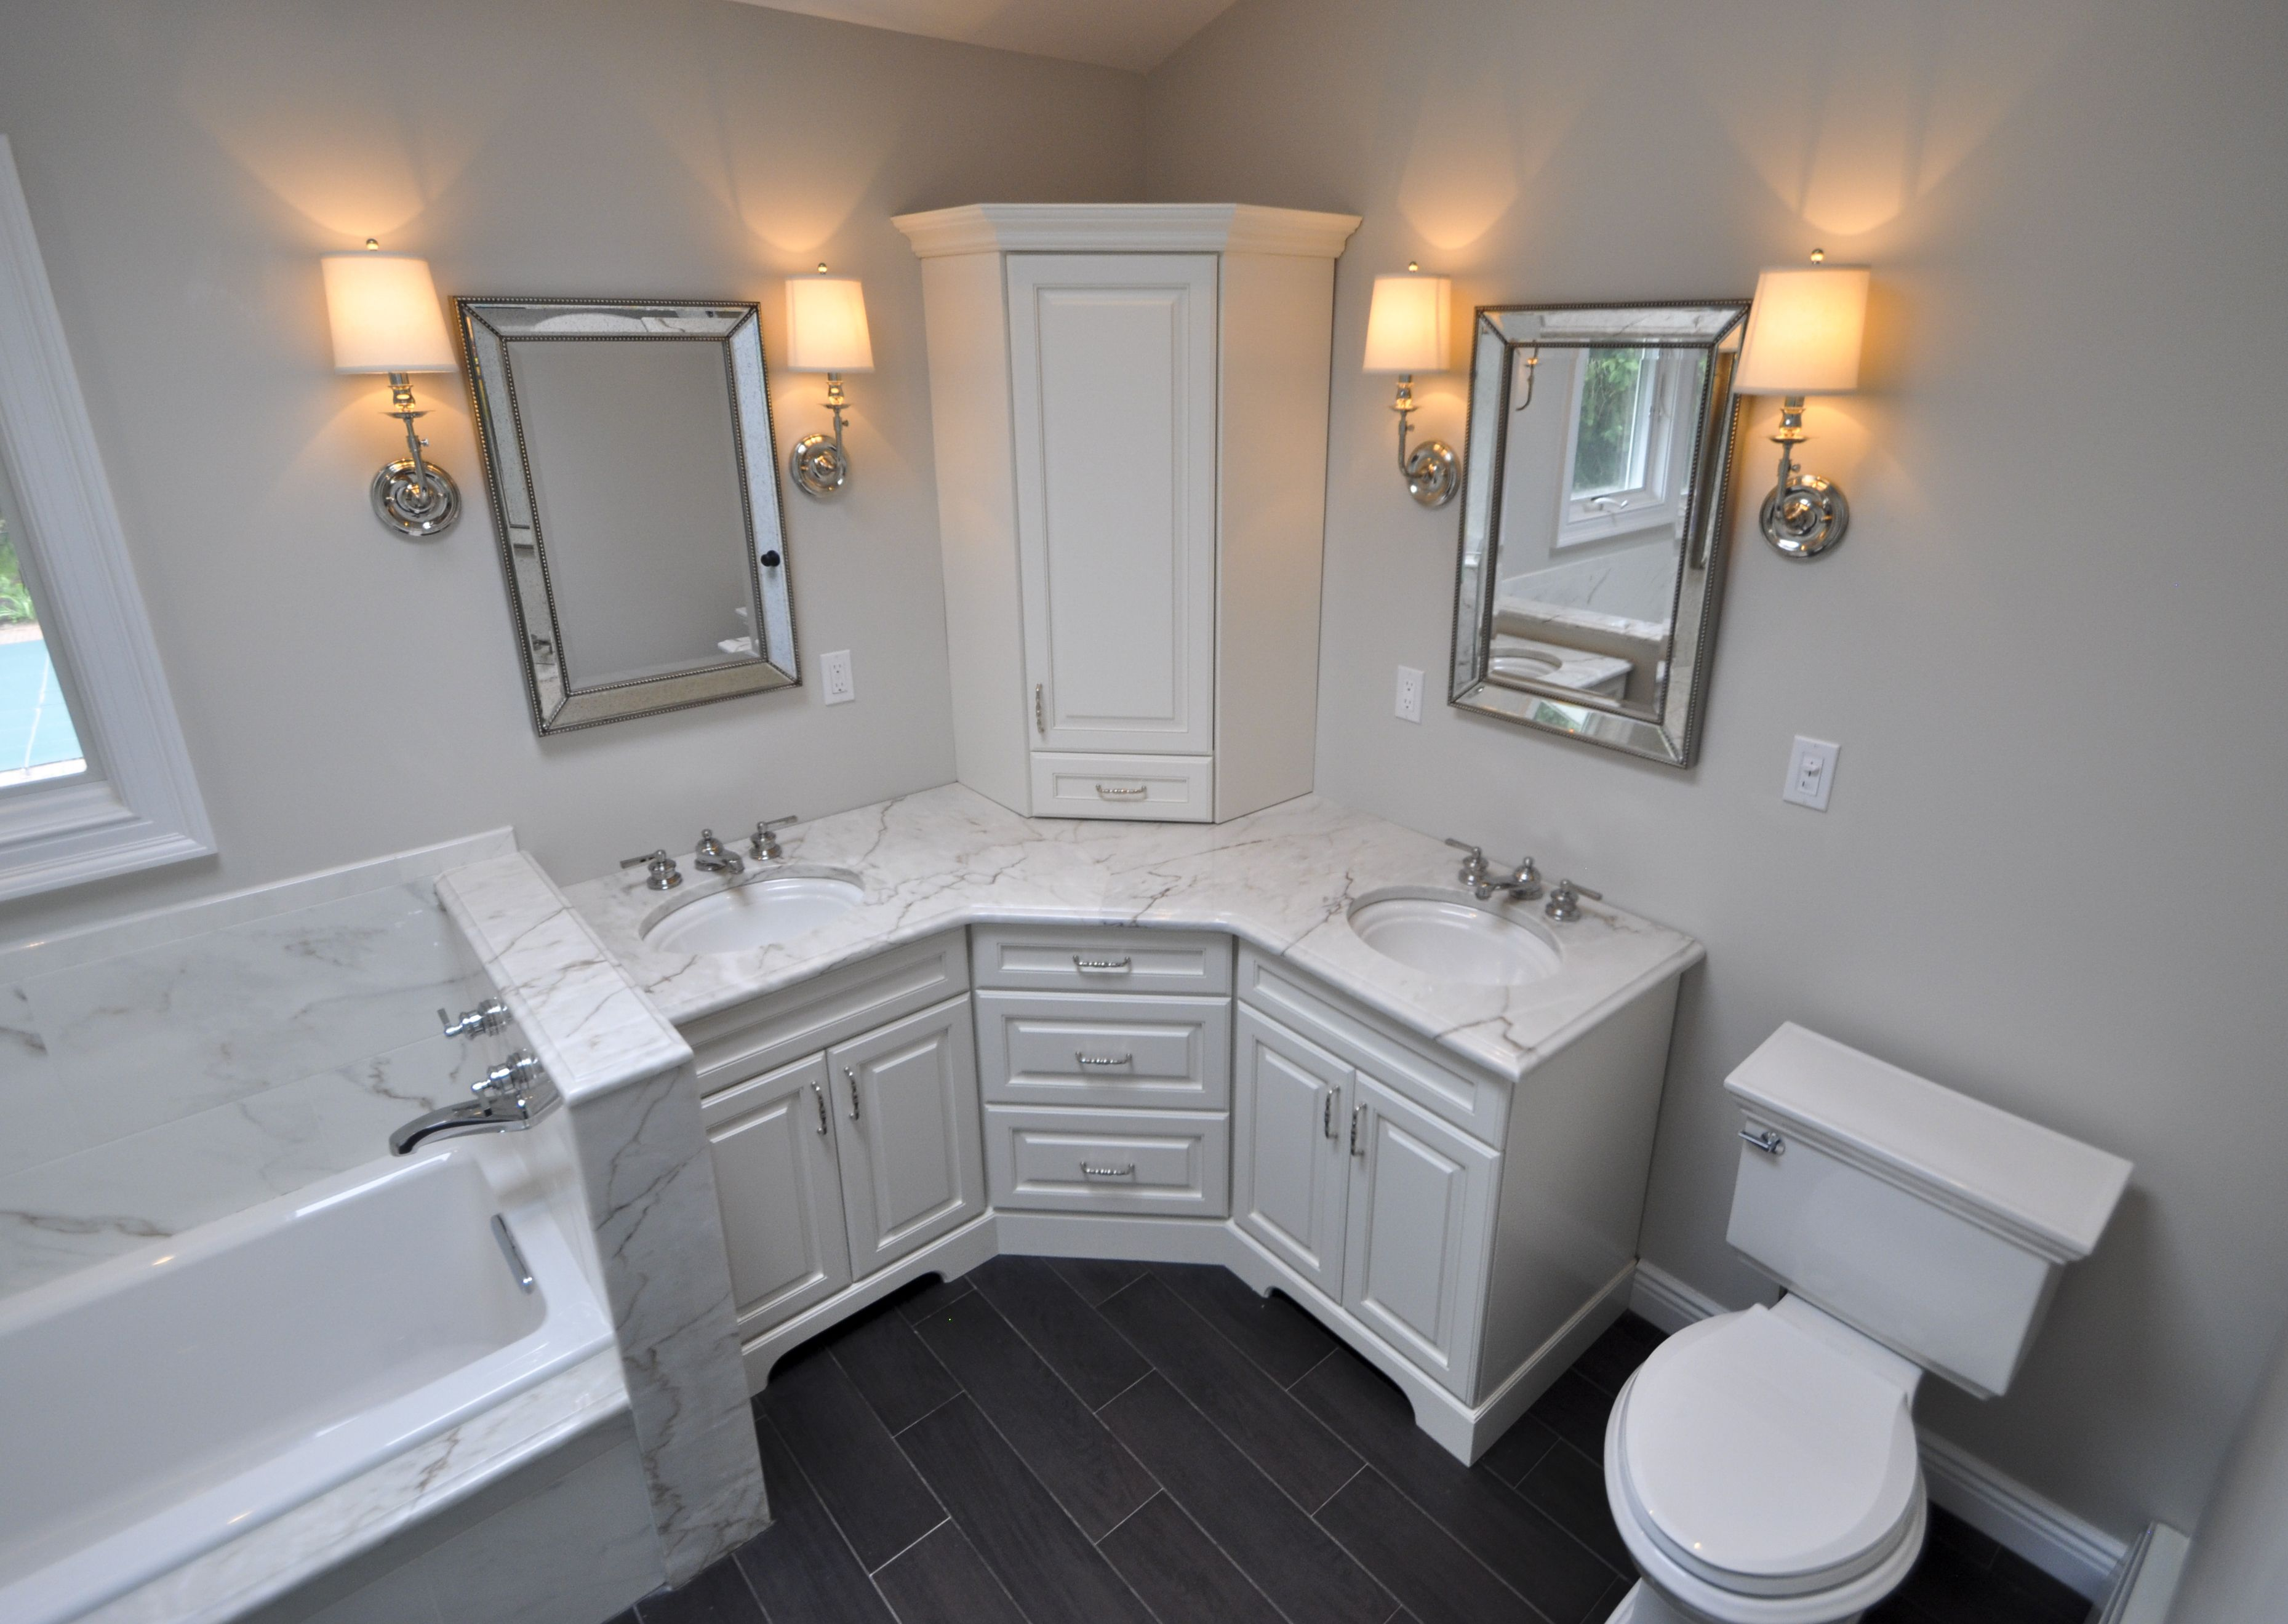 Corner bathroom sink cabinets - Custom Master Bathroom With Double Corner Vanity Tower Cabinet Wall Sconces Toilet